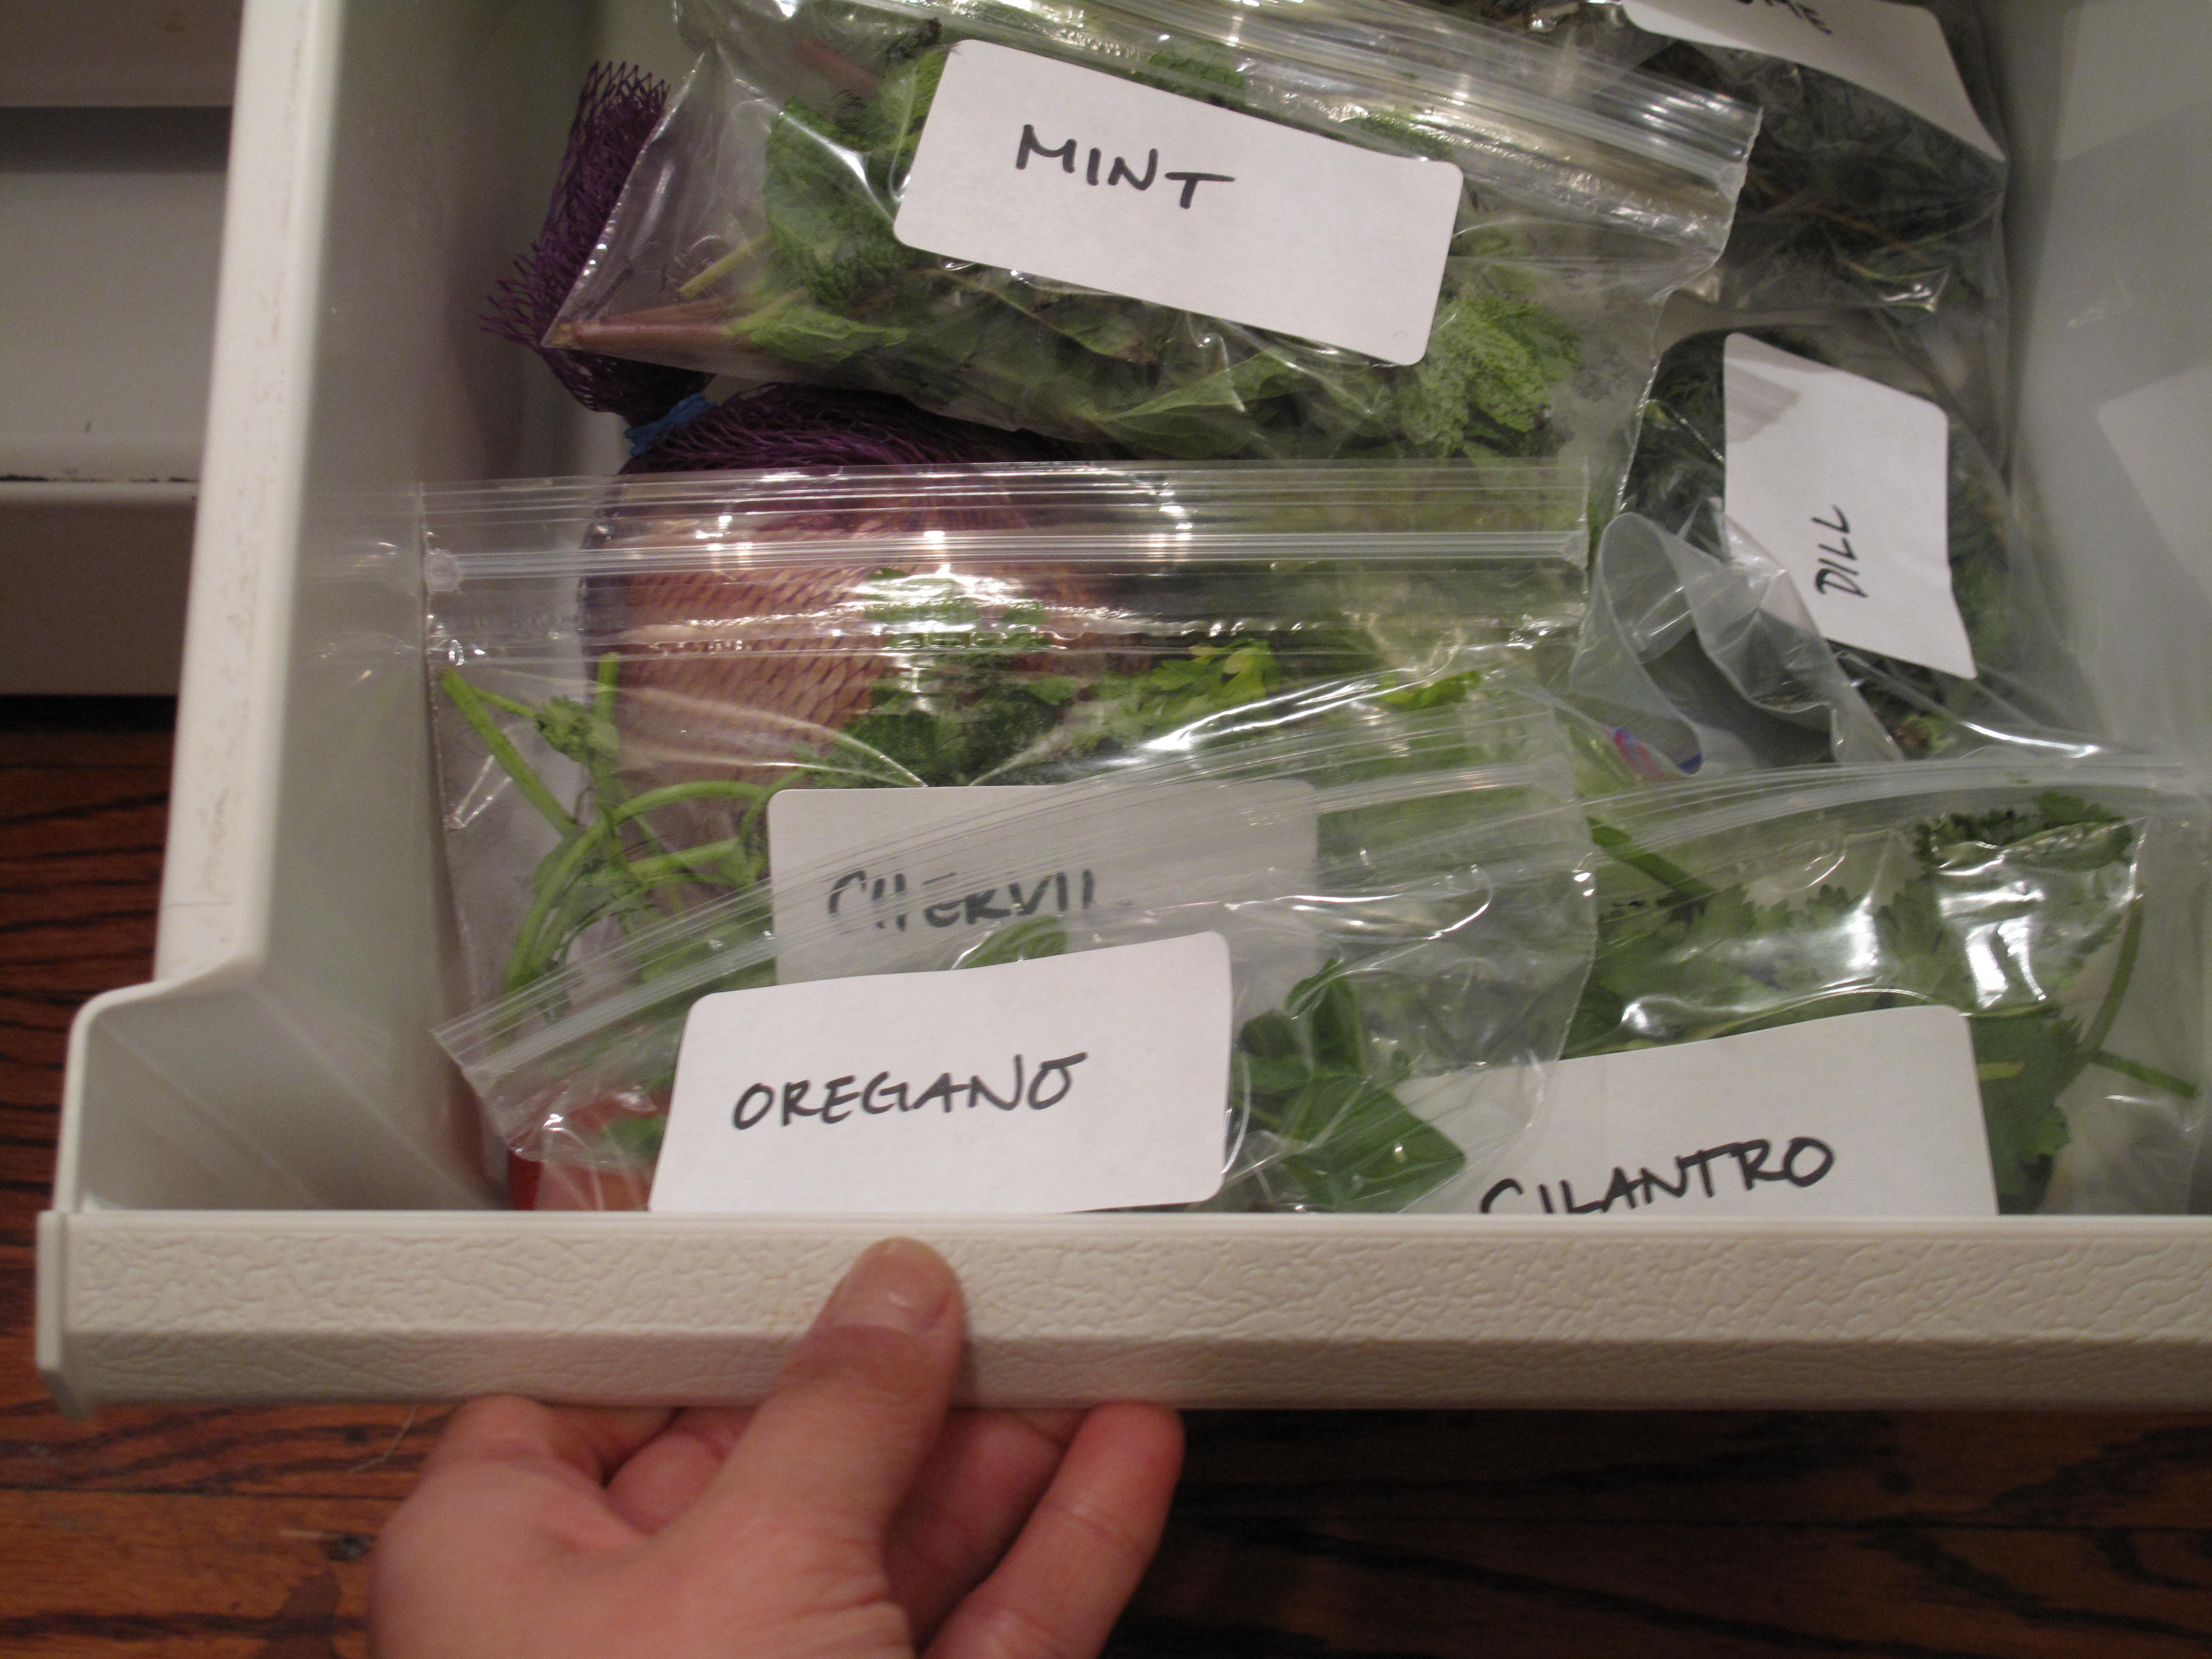 Label your herbs and spices so you know exactly what is in every bag. It only takes a minute, but it'll save tons of produce from going to waste.